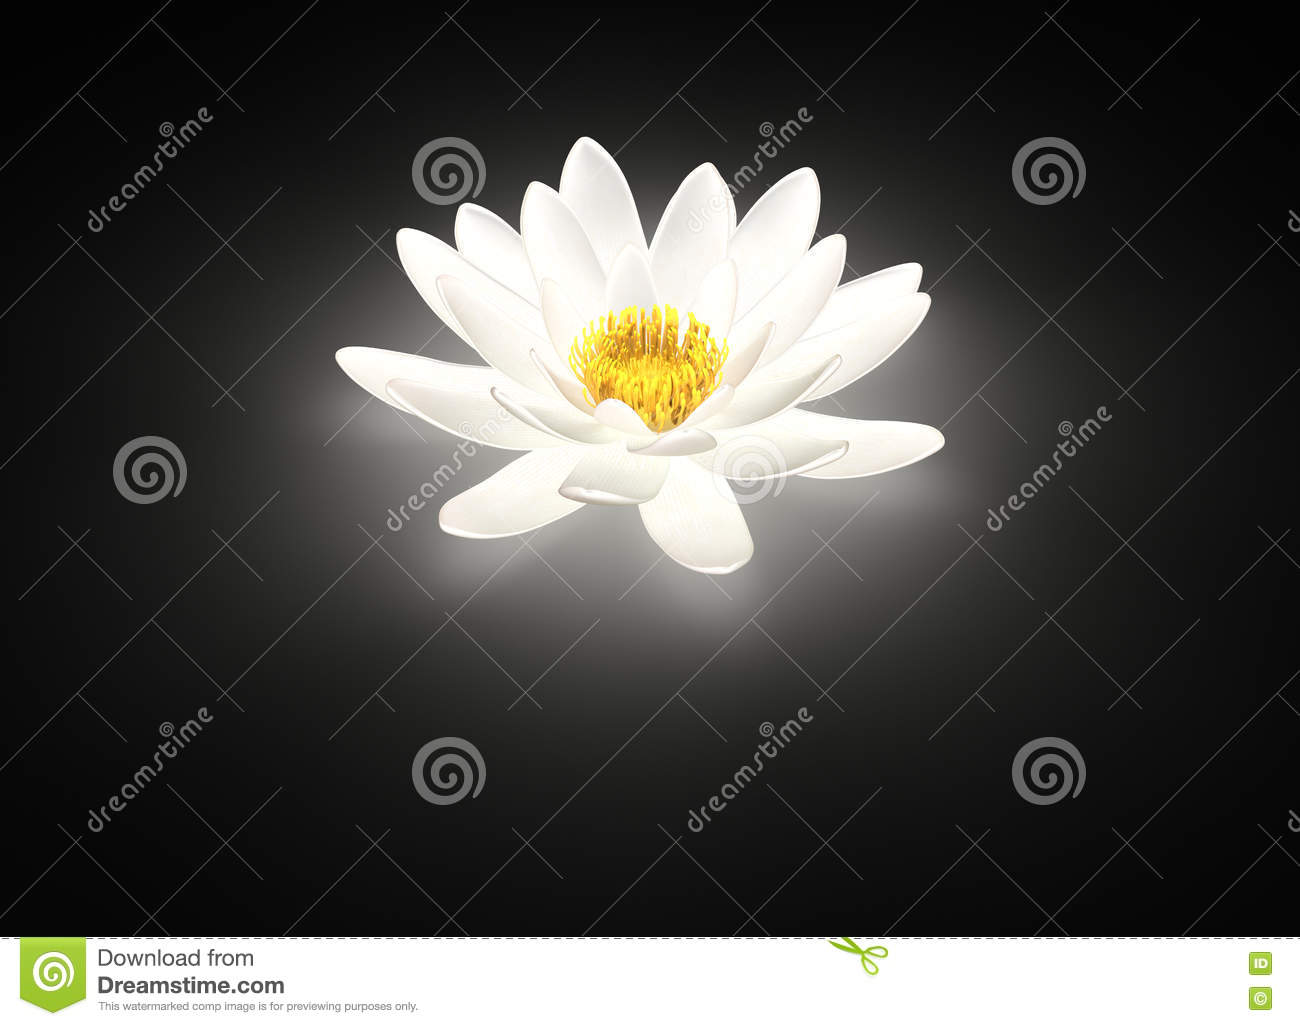 Glowing White Lotus Flower Water Lily Stock Photo Image Of Calm